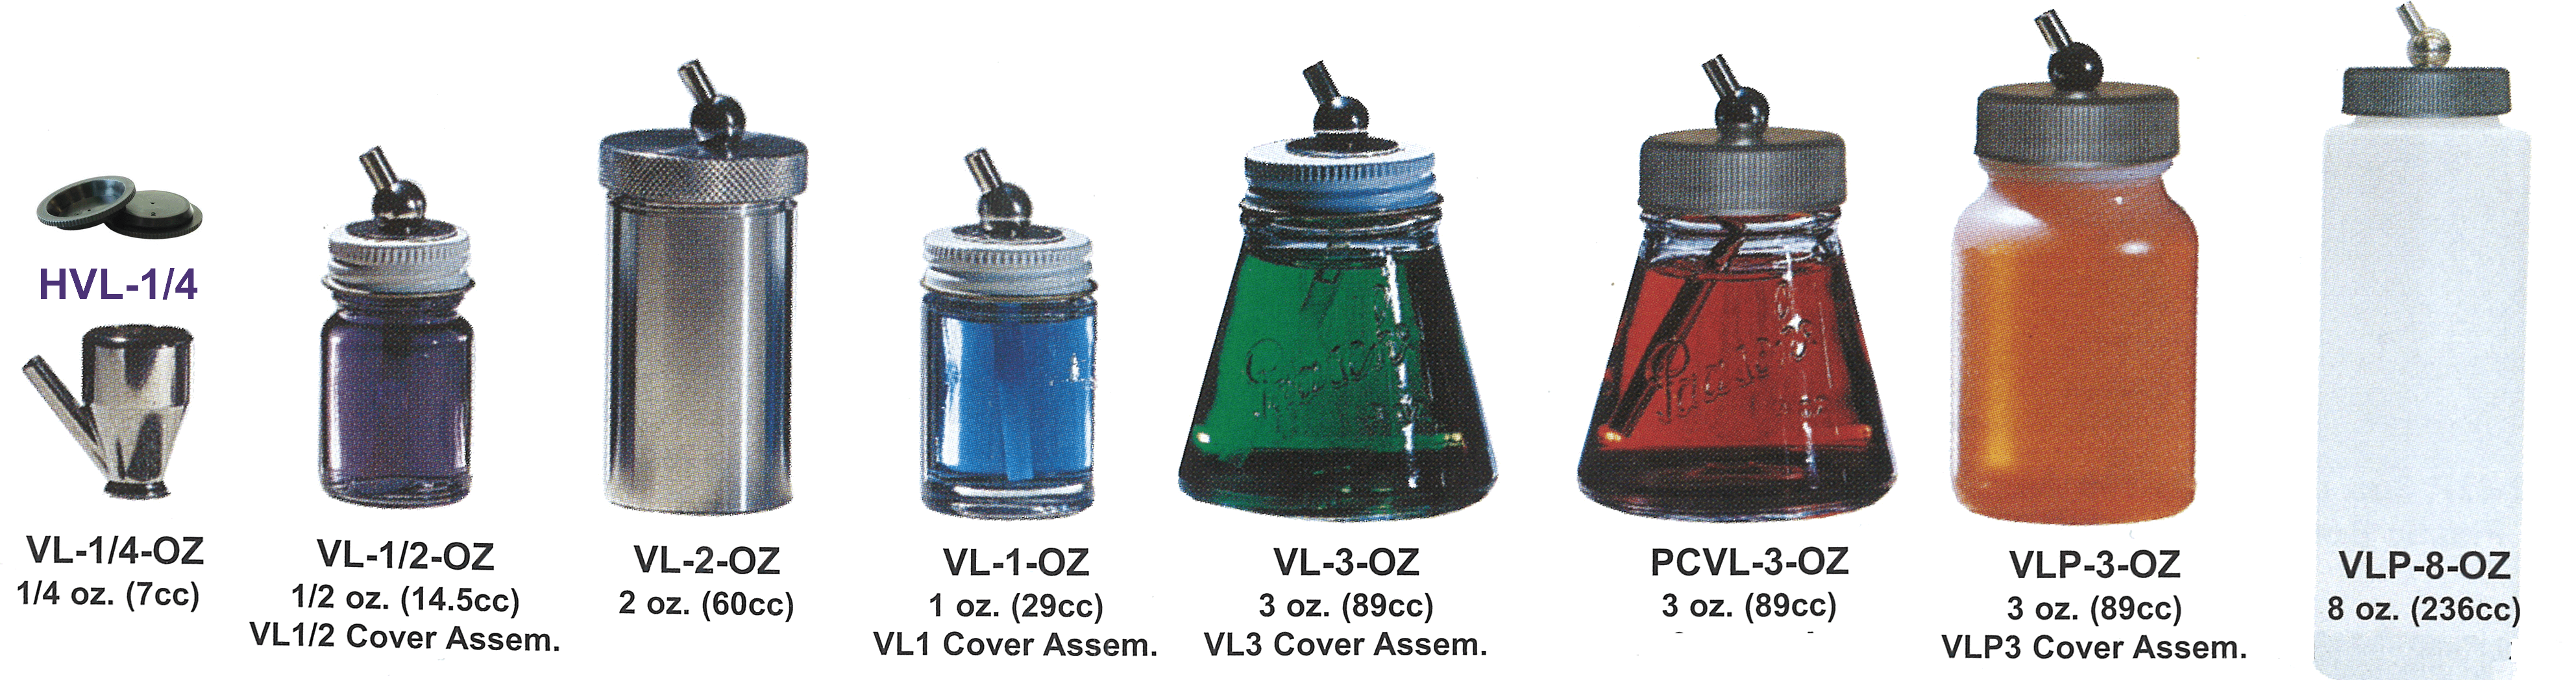 VL BOTTLE ASSEMBLIES